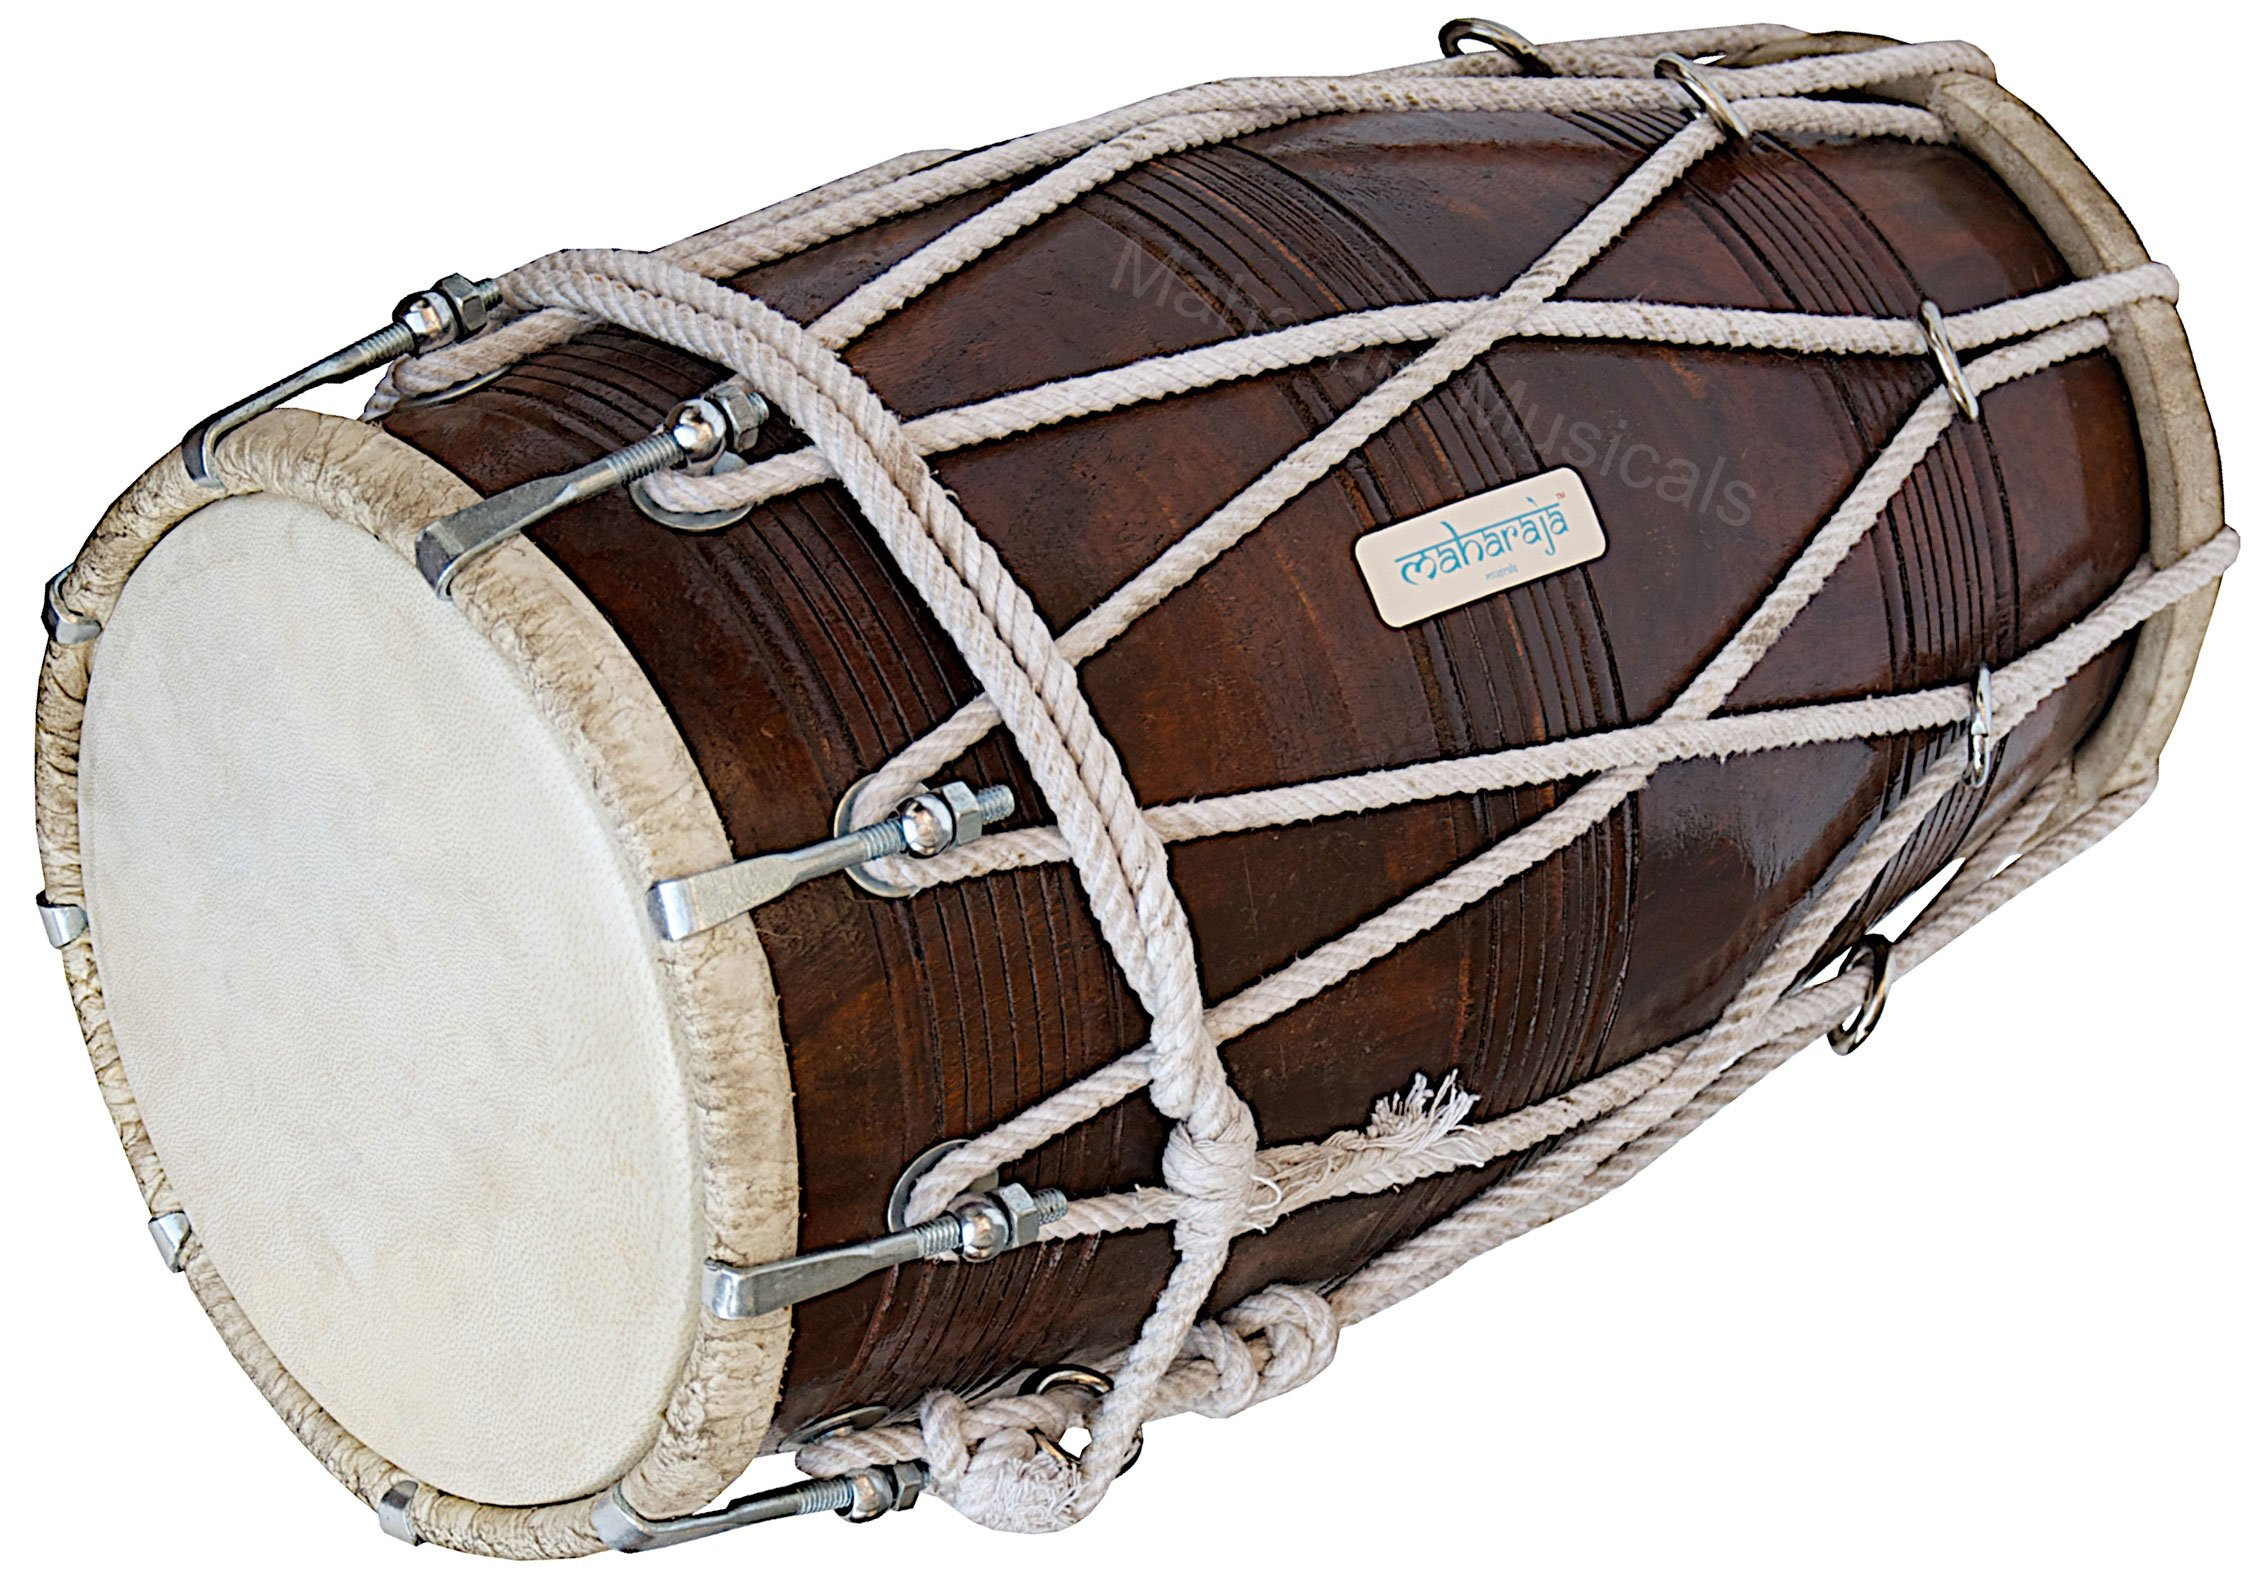 Special Dholak Drum by Maharaja Musicals, Professional Quality, Sheesham Wood, Padded Bag, Spanner, Dholki Musicals Instrument (PDI-BBC) by Maharaja Musicals (Image #8)